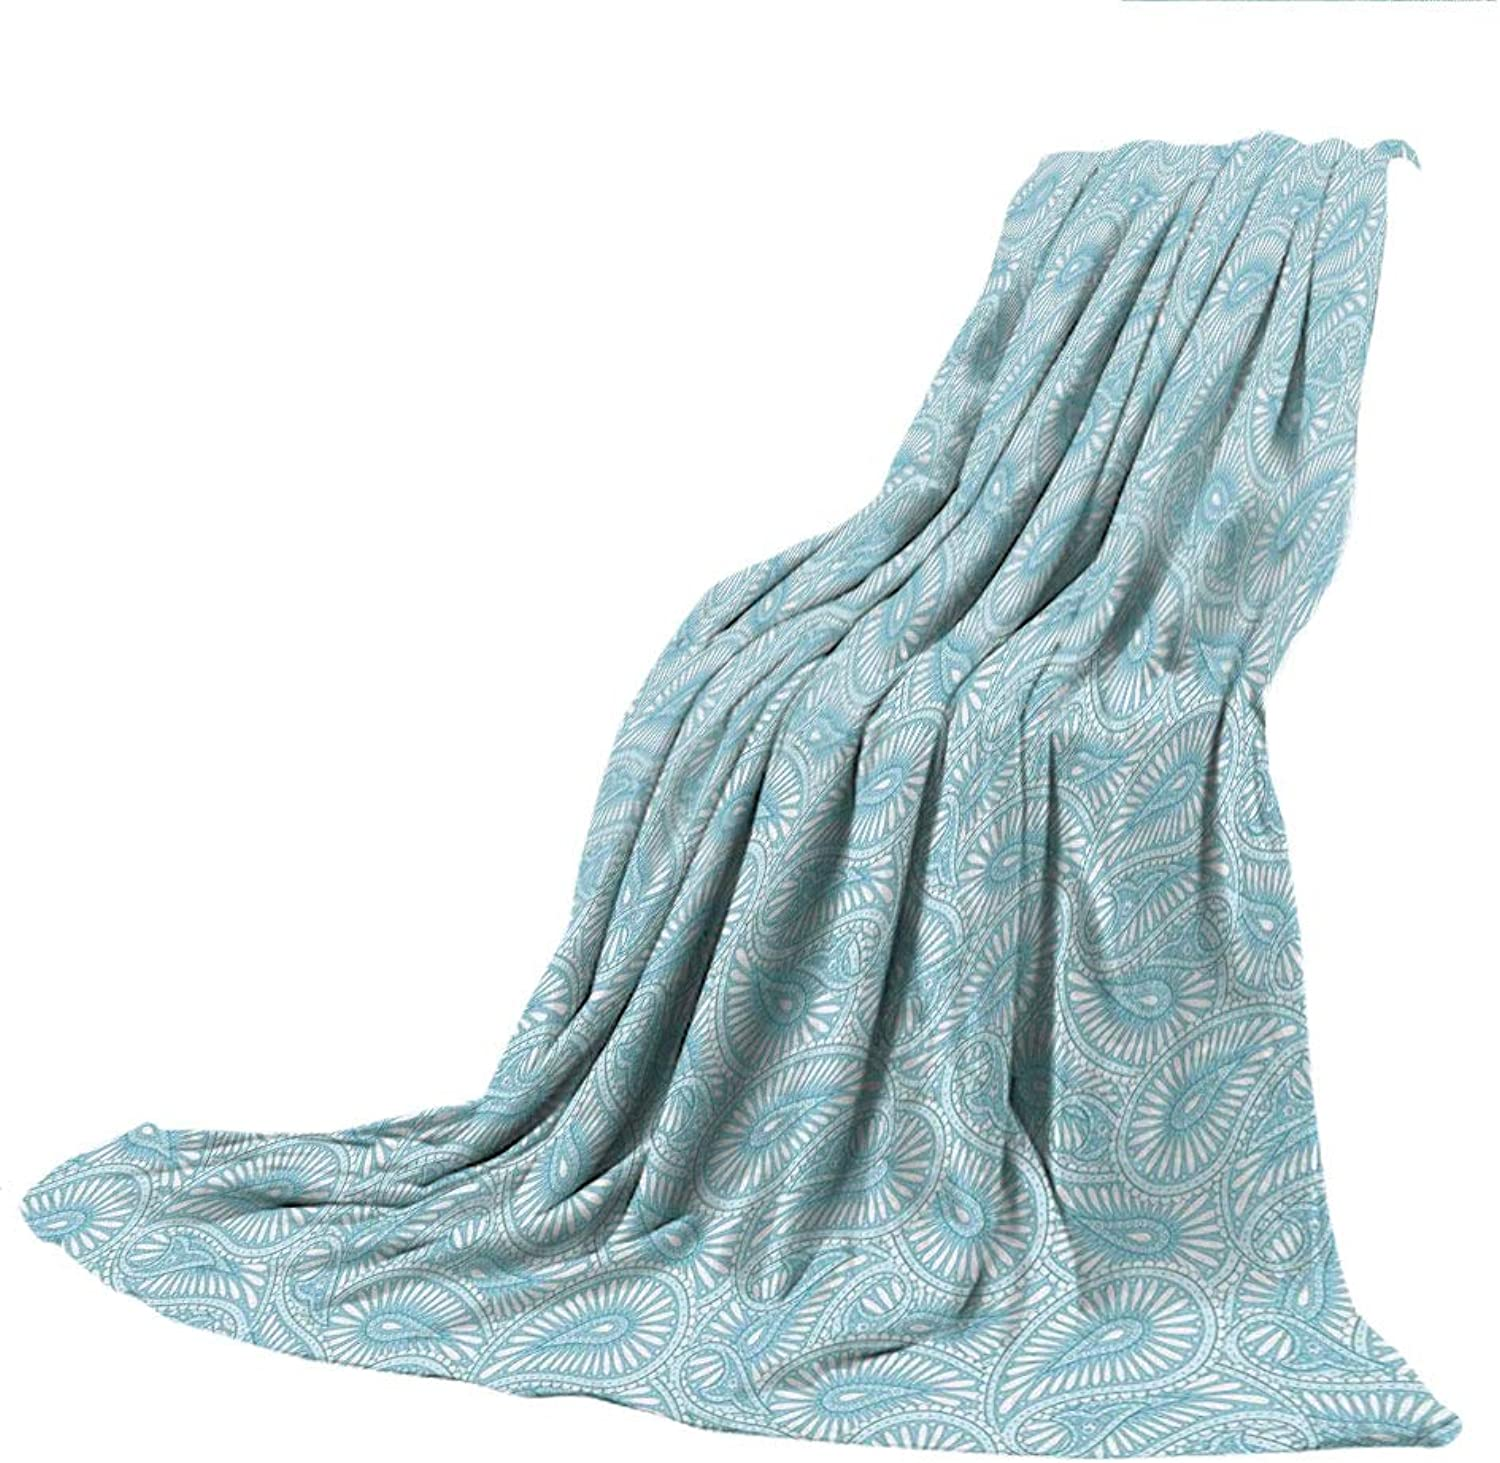 SCOCICI Blanket for Bed Couch Chair Fall Winter Spring Living Room,Arabic,Paisley Pattern Ethnic Traditional Henna Style with Swirled Arabesque Leaves,Light bluee Coconut,59.06  W x 86.62  H